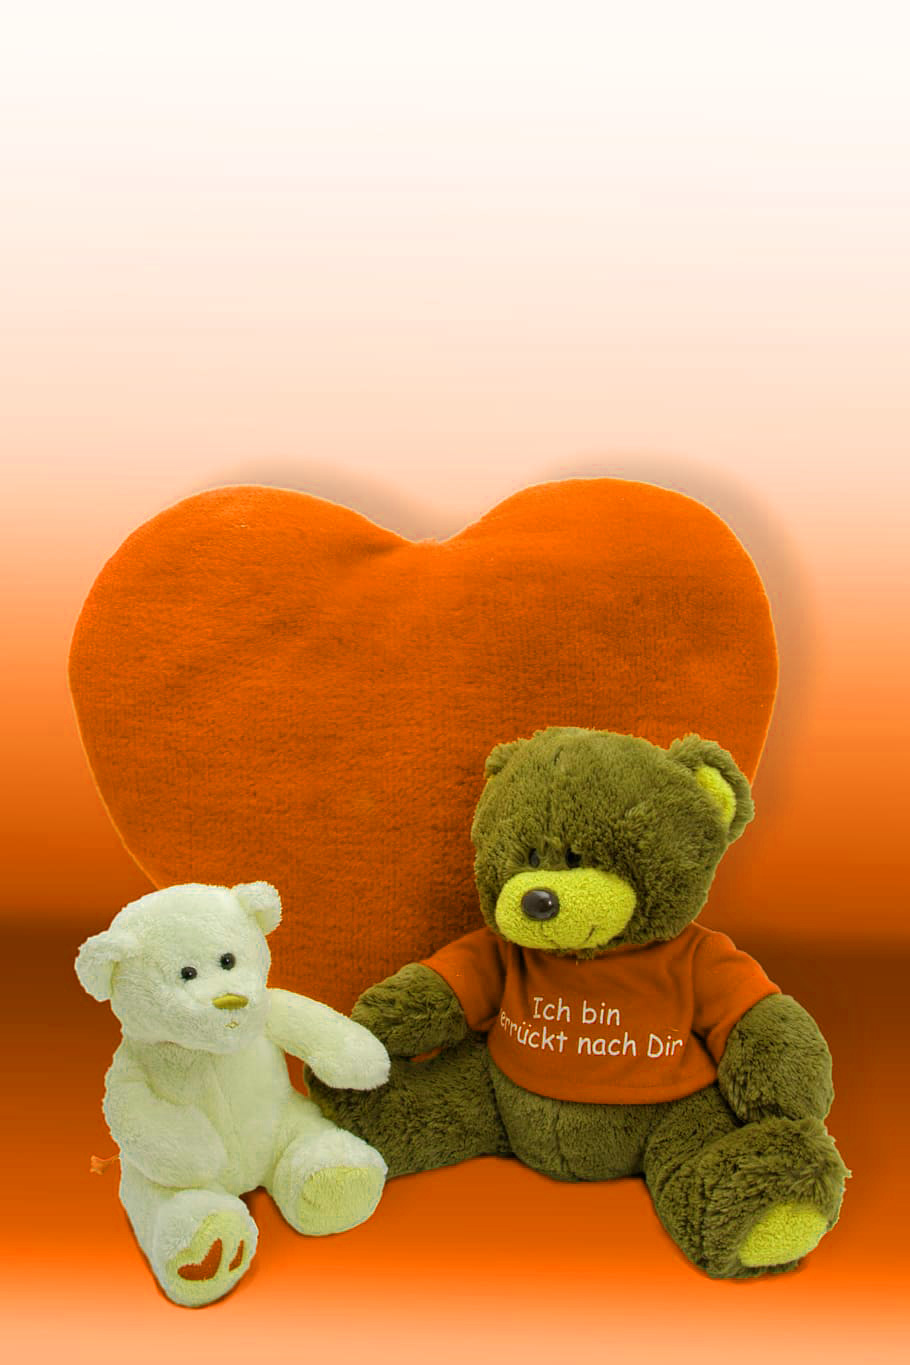 Teddy Bear Images Pics Free Download for Facebook